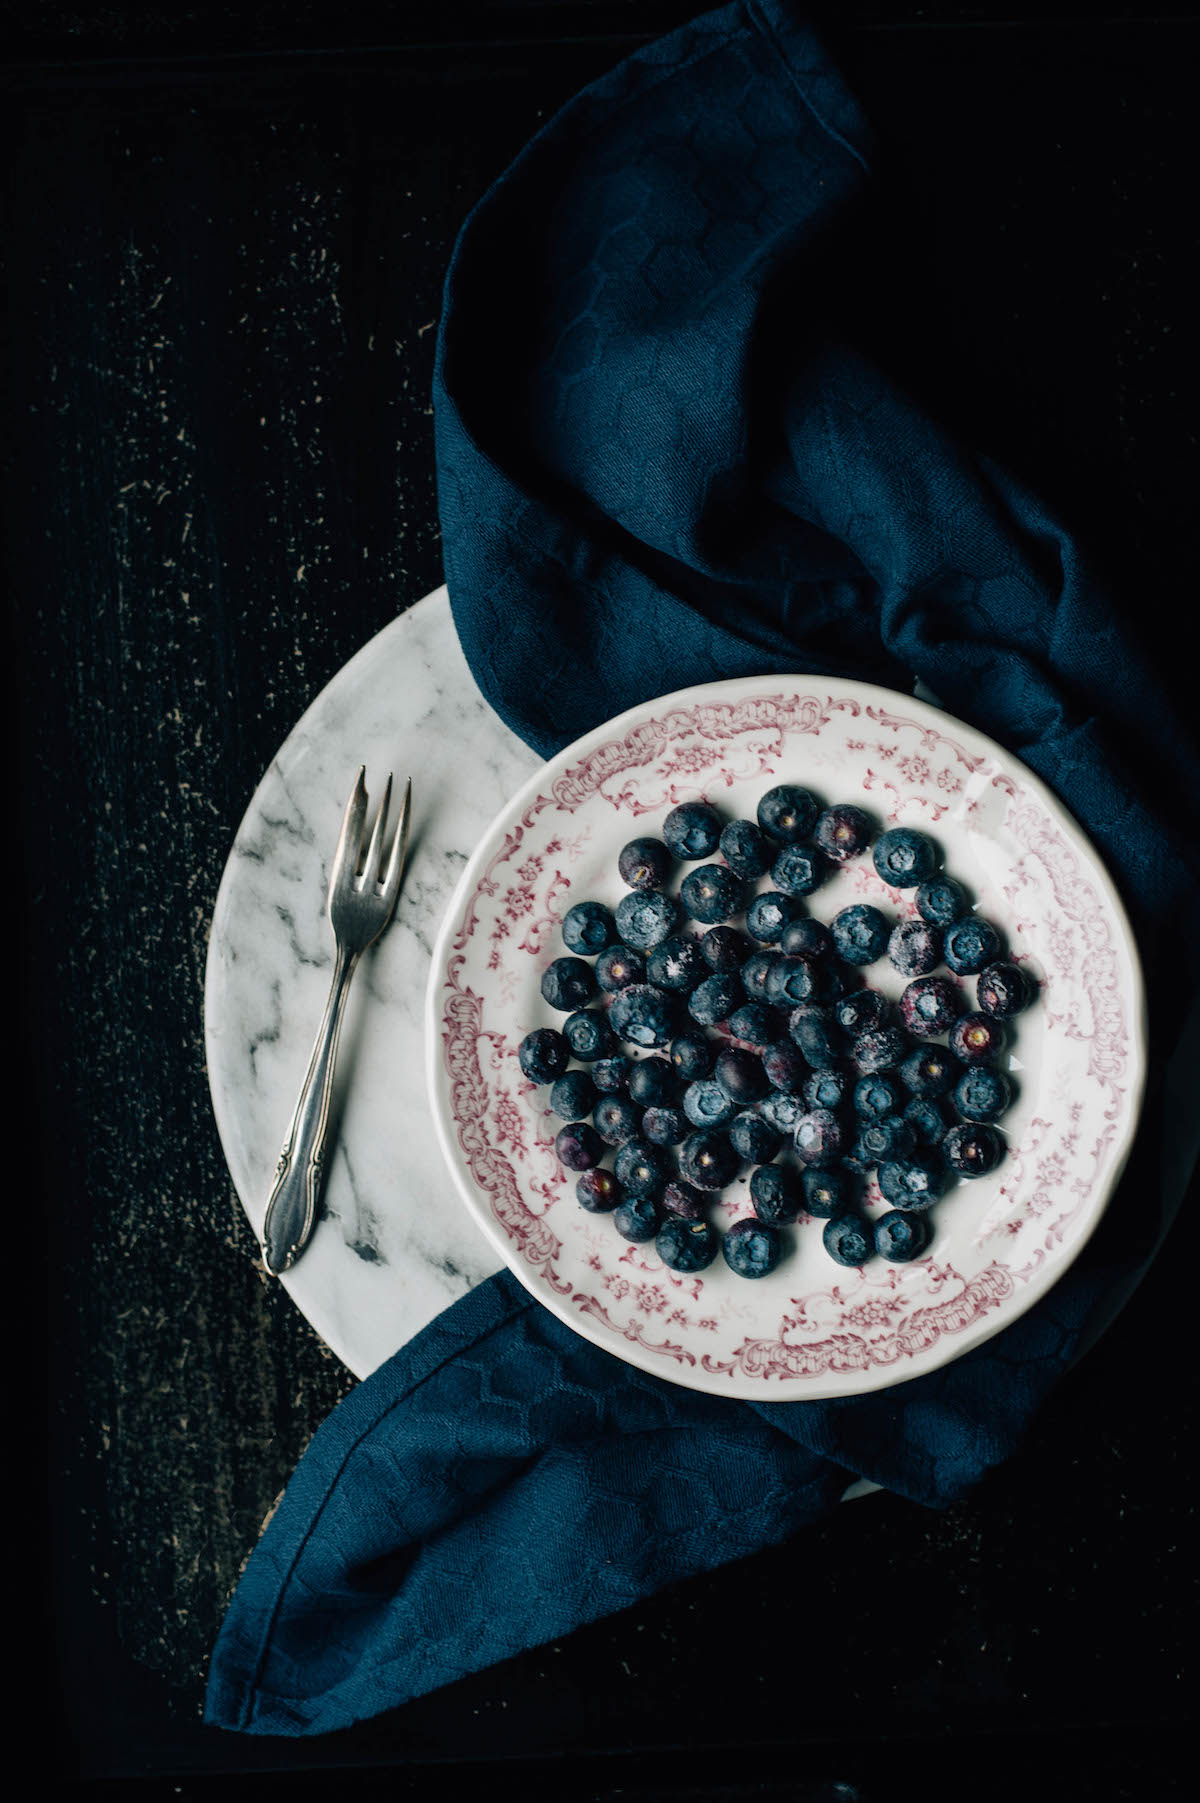 blueberry styling vintage bord